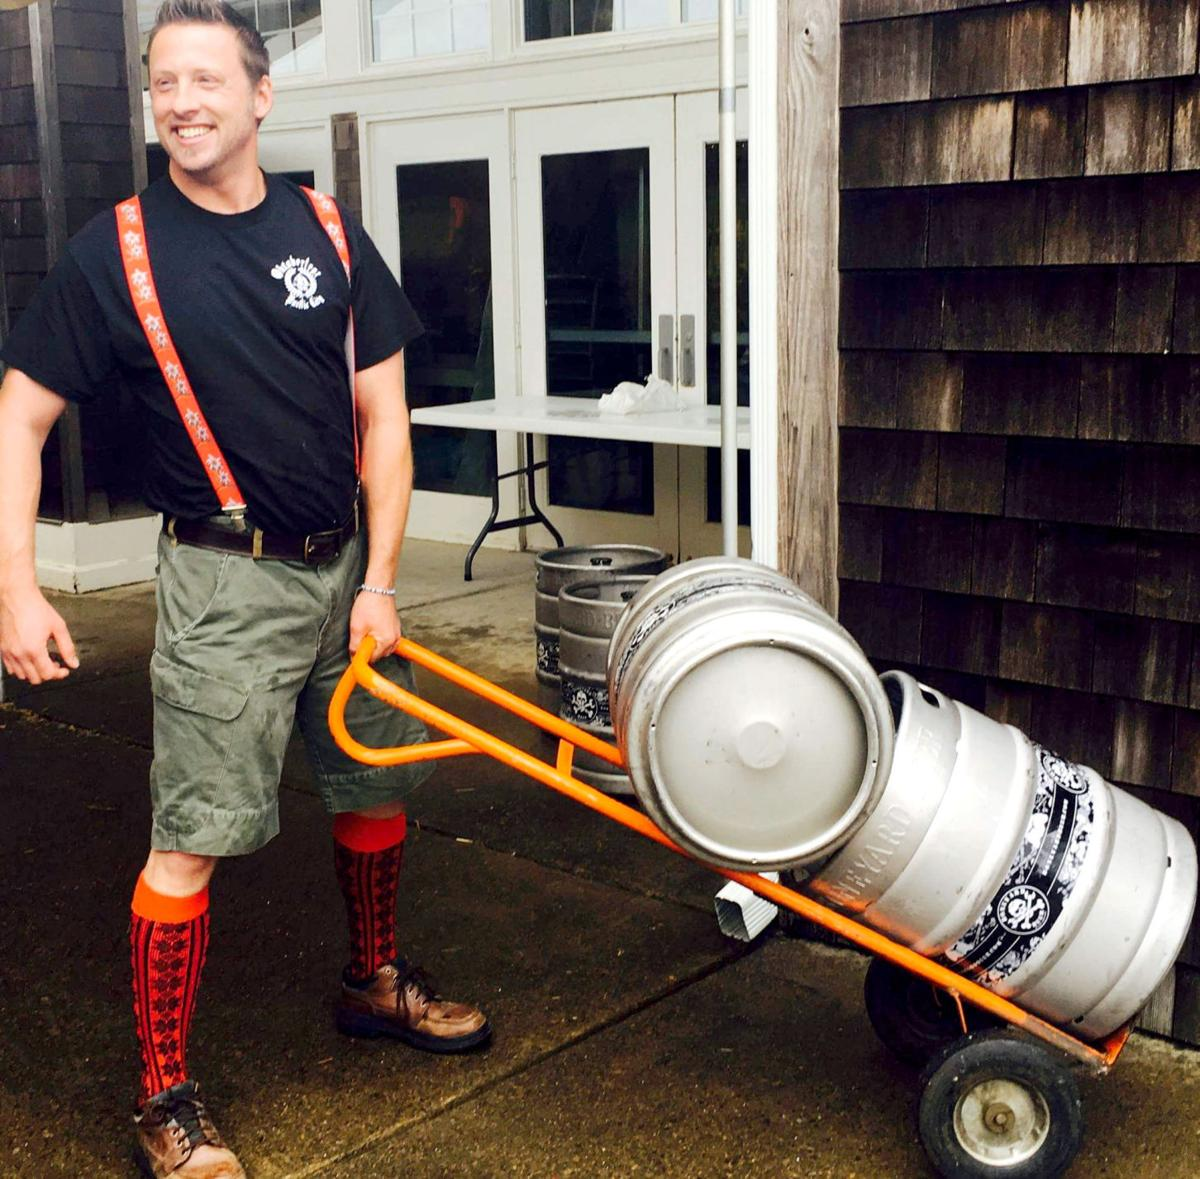 Leather pants and libations: Pacific City gears up for Oktoberfest